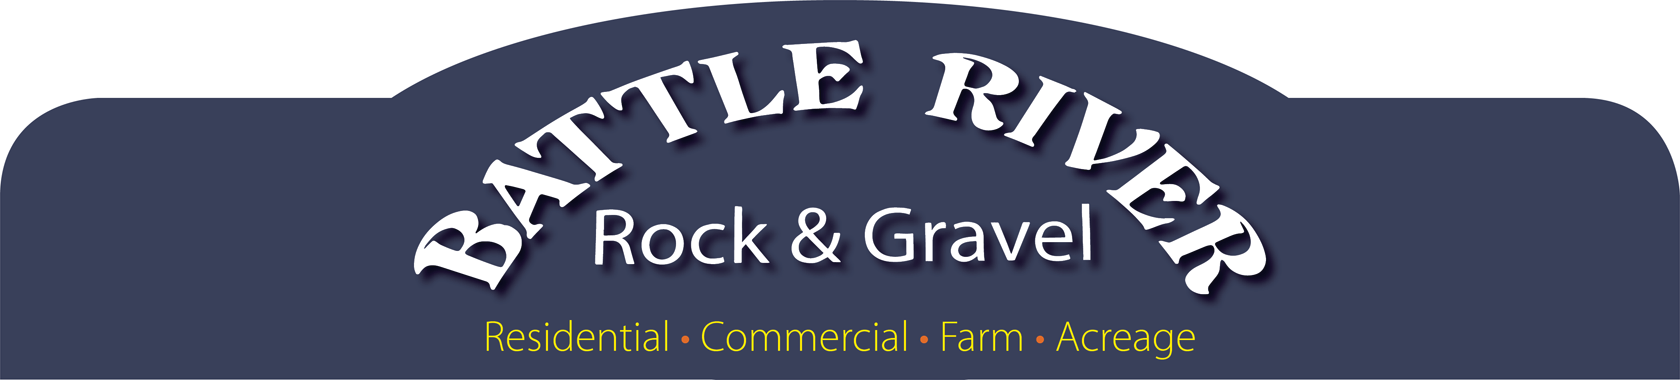 Battle River Rock & Gravel